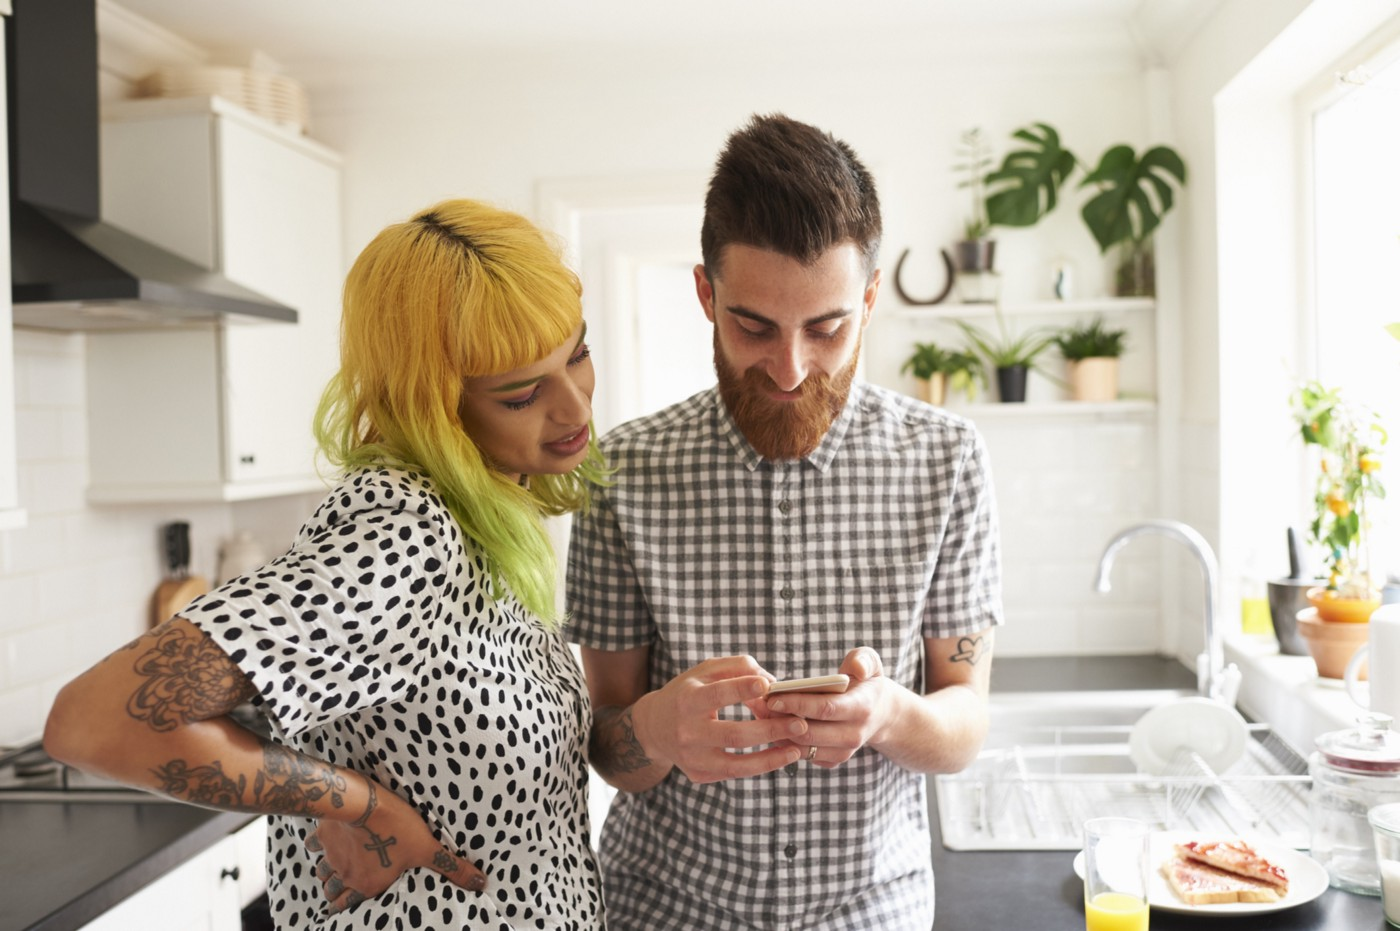 A couple in their kitchen looking at one of their phones.